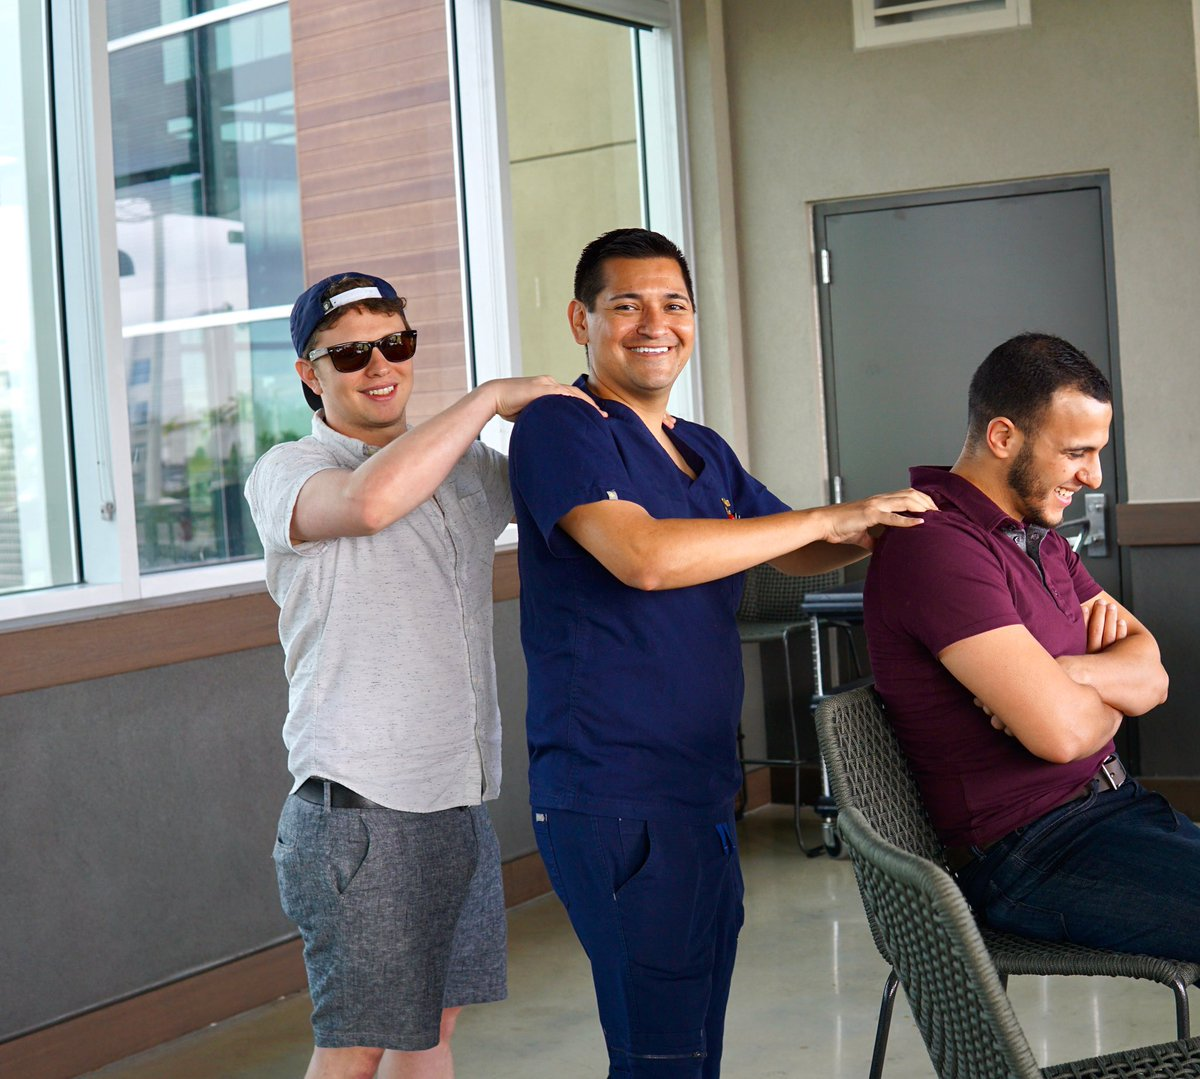 All aboard, here comes the back rub train.  P.S. This isn't just a resident wellness day activity. #krmc #Miami #EmergencyMedicine #residency<br>http://pic.twitter.com/cw4vKZpETQ